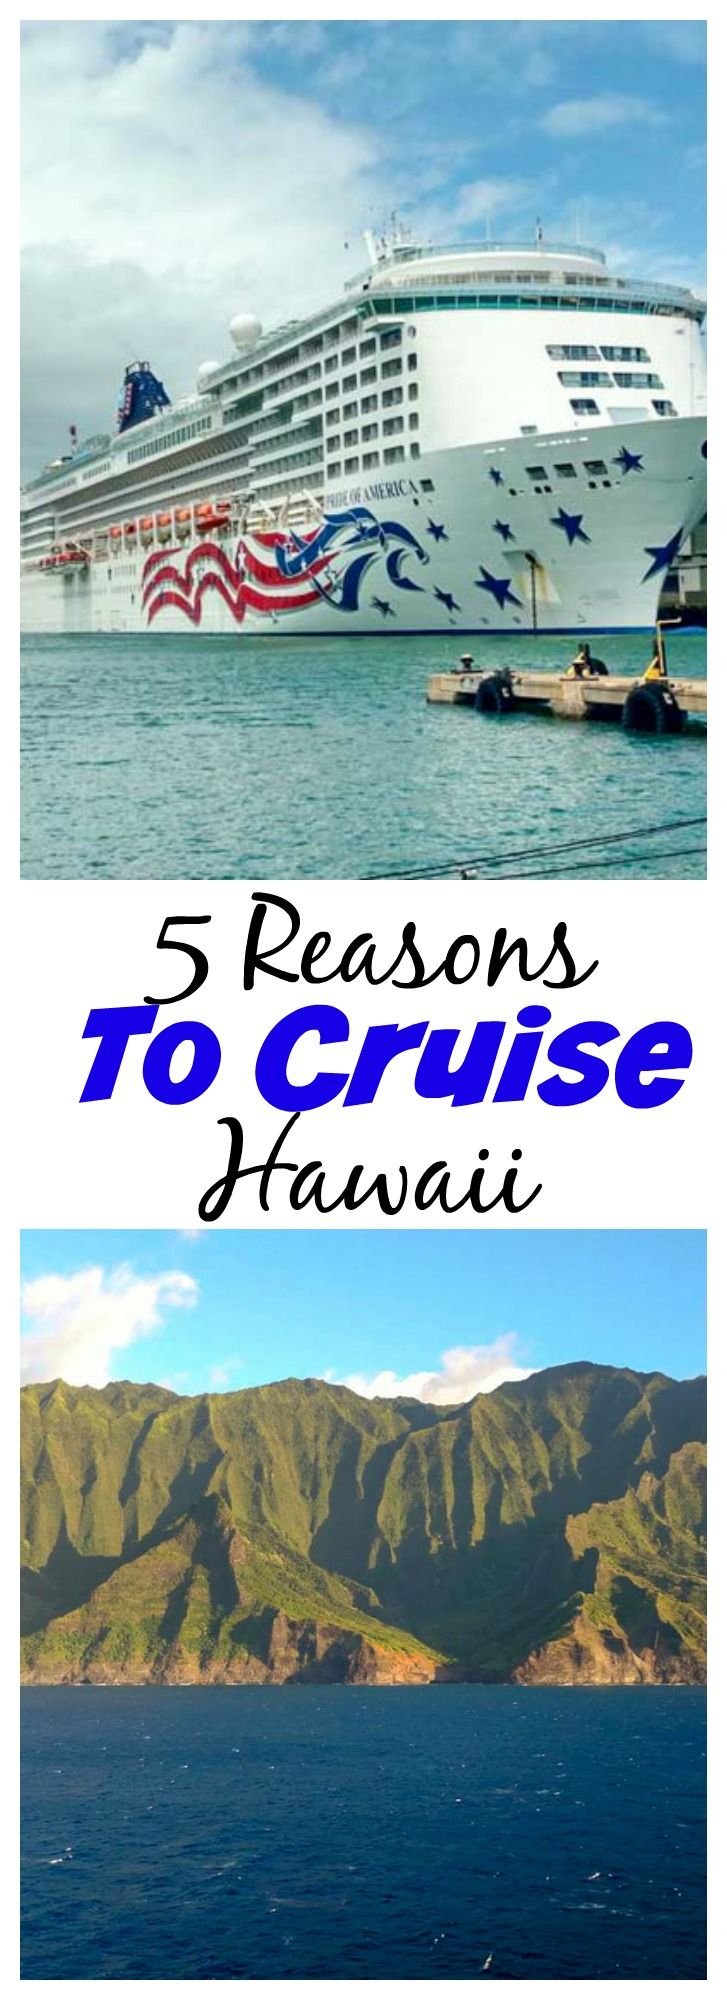 5 Reasons to go on a Hawaiian Cruise - Not sure what to do ...